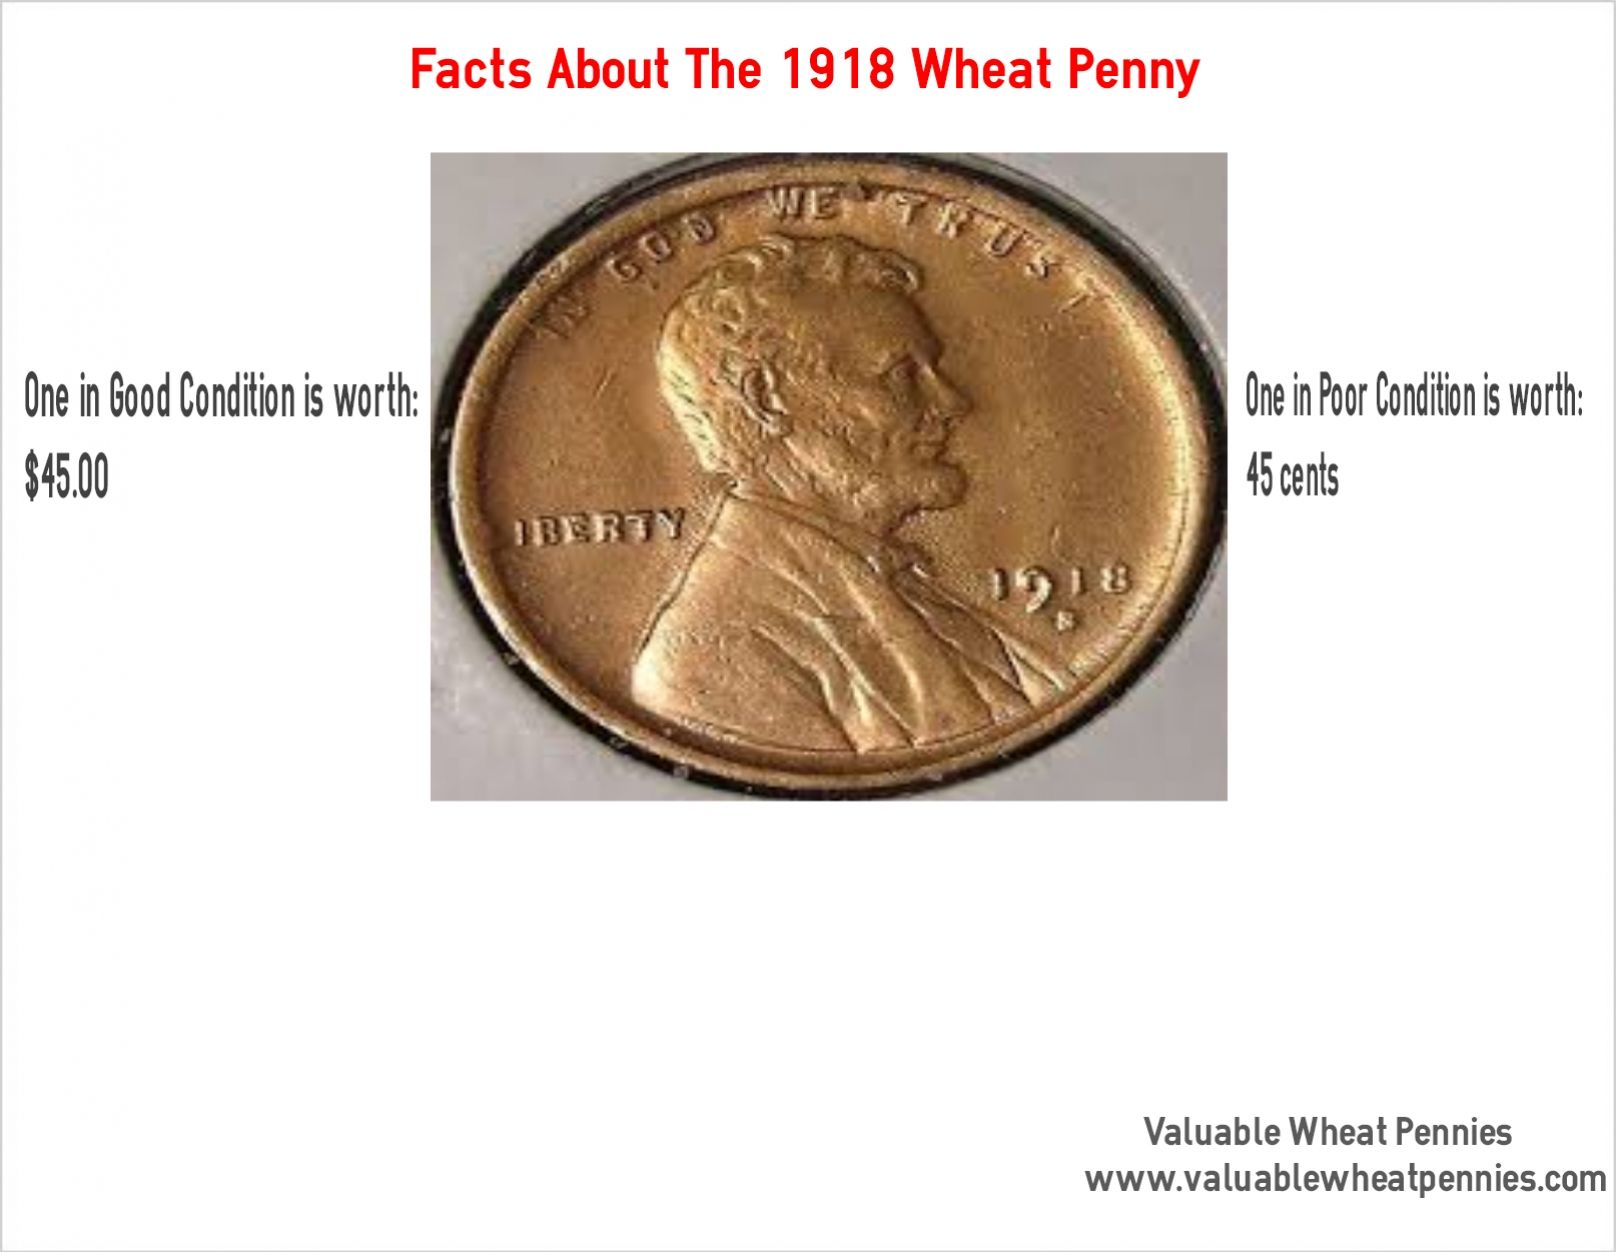 How Much Is A 1918 Penny Worth Valuable Wheat Pennies Wheat Pennies Penny